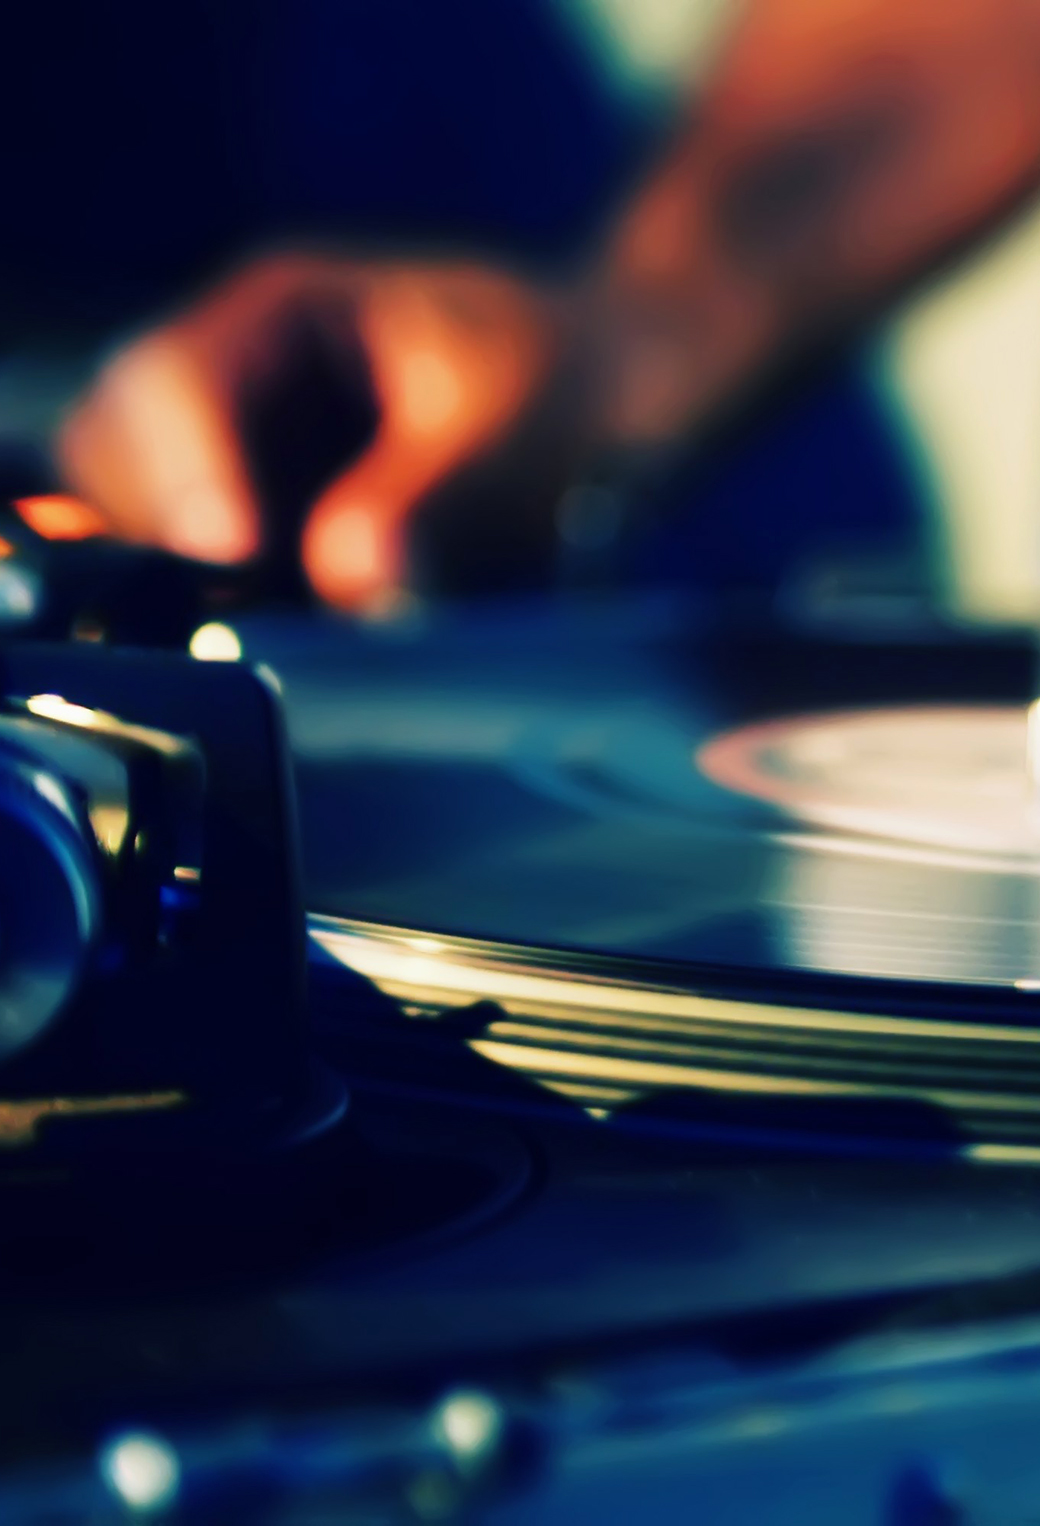 DJ Turntables Plate Hands Music 3Wallpapers iphone Parallax DJ Turntables Plate Hands Music